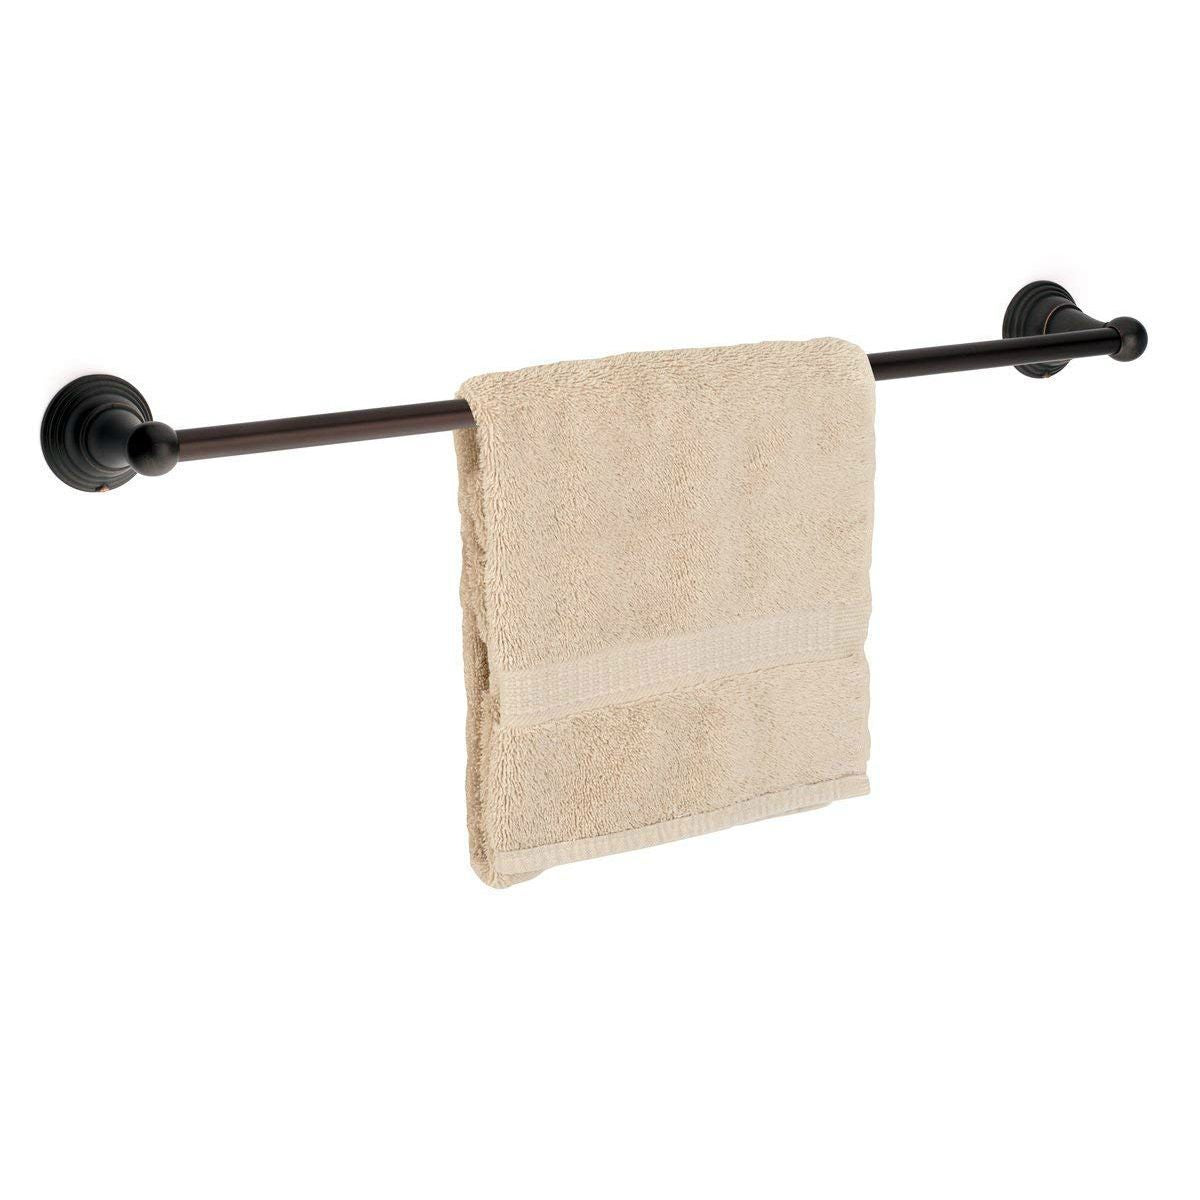 "Dynasty Hardware Muirfield 2230-ORB Oil Rubbed Bronze 30"" Single Towel Bar"